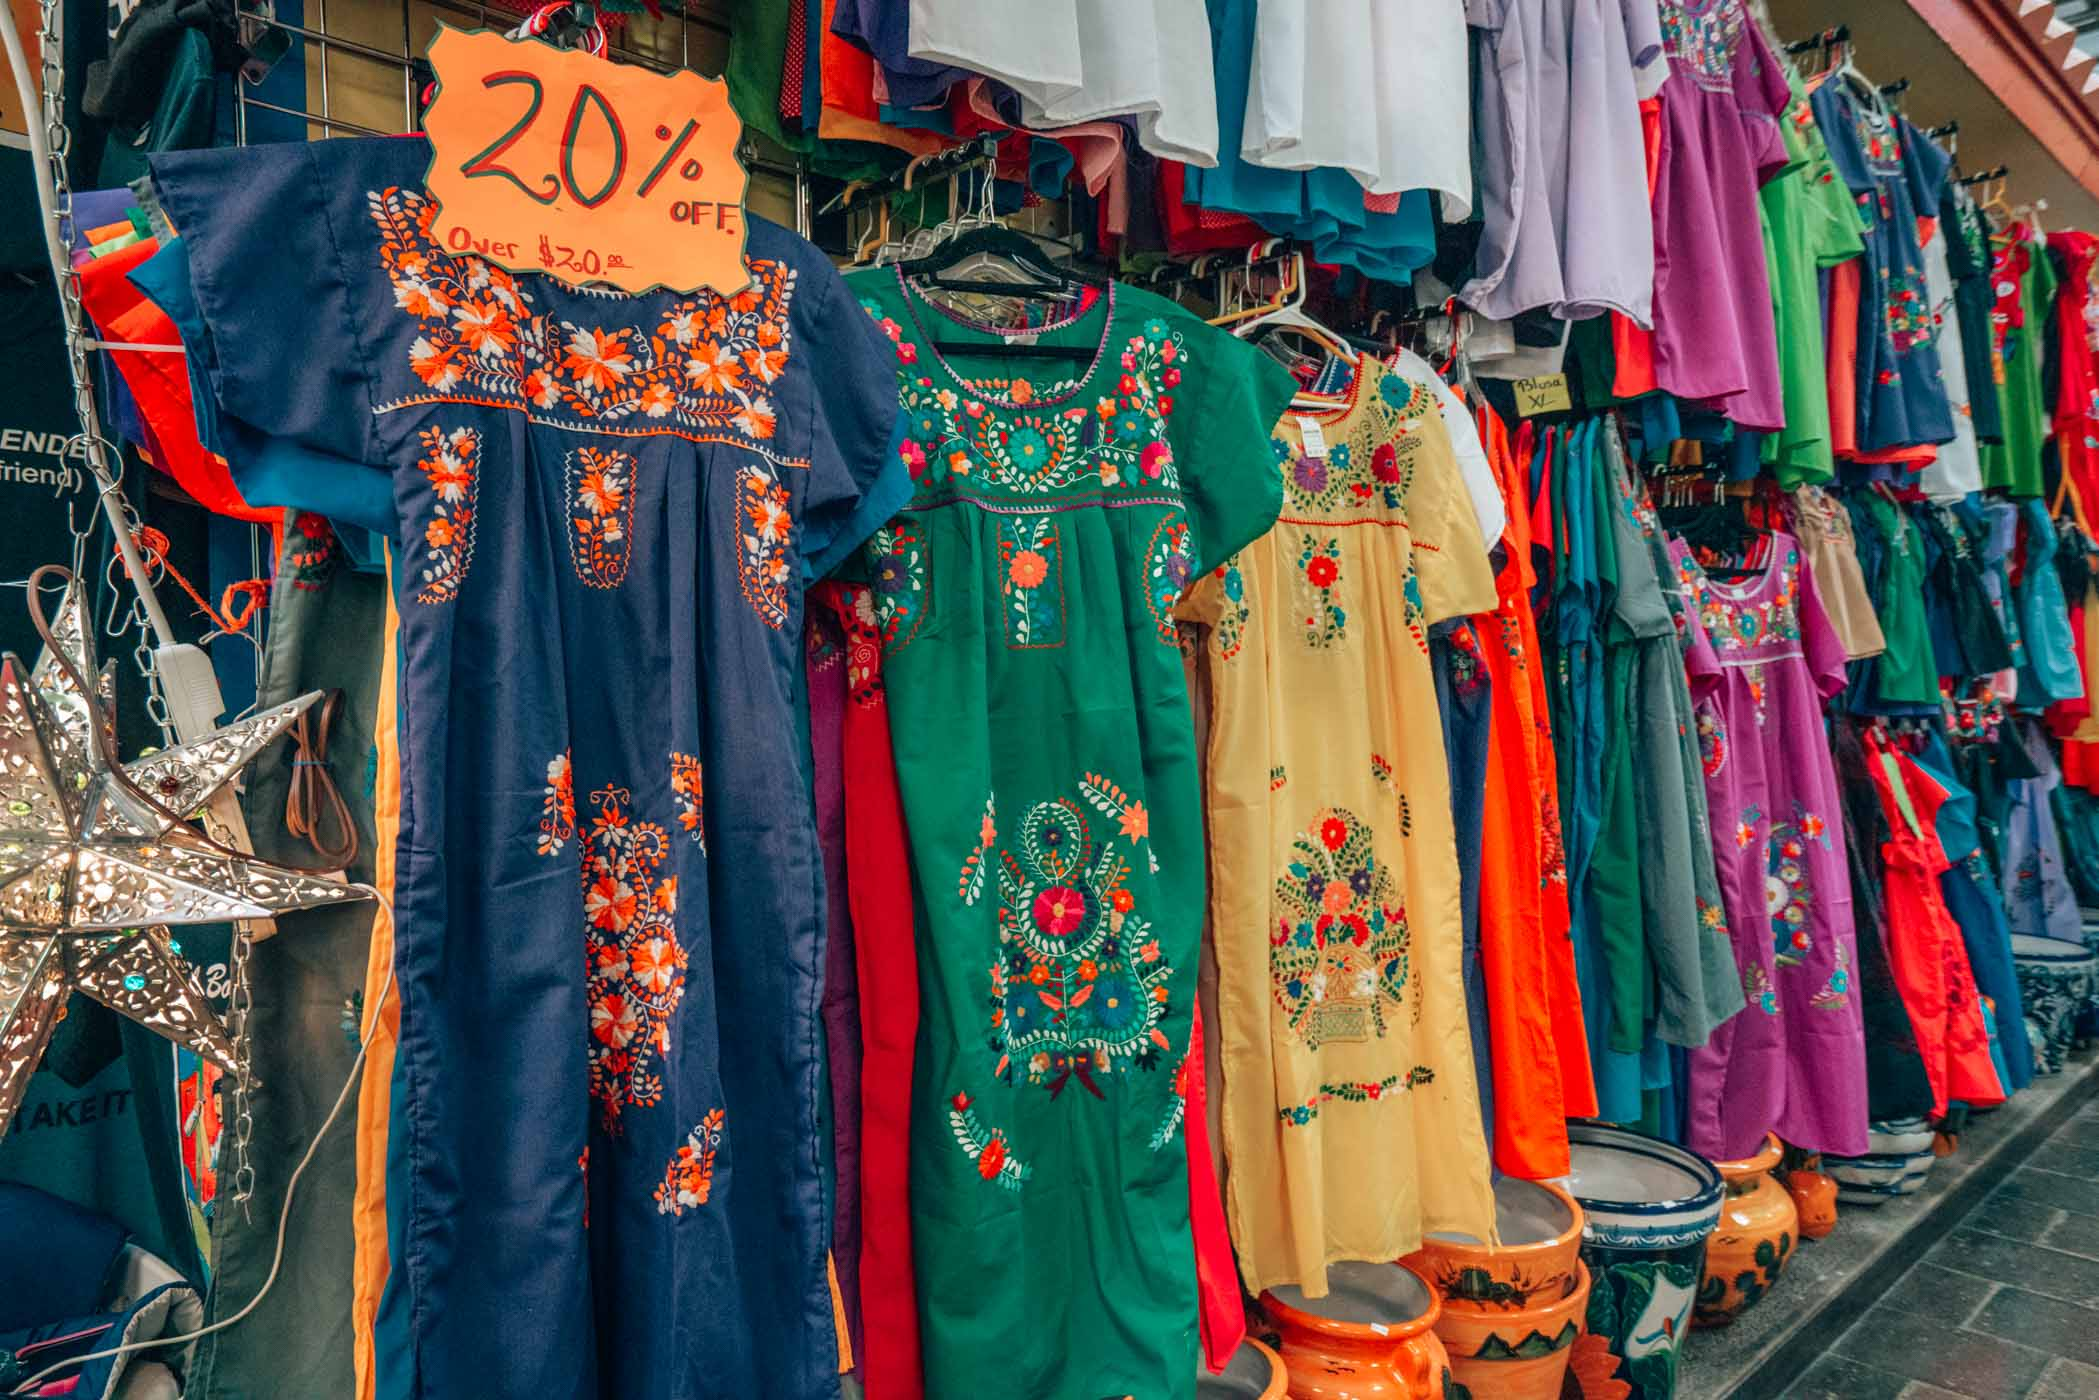 Find the best things to do in San Antonio Texas- including shopping in Market Square. #Texas #visitTexas #USA